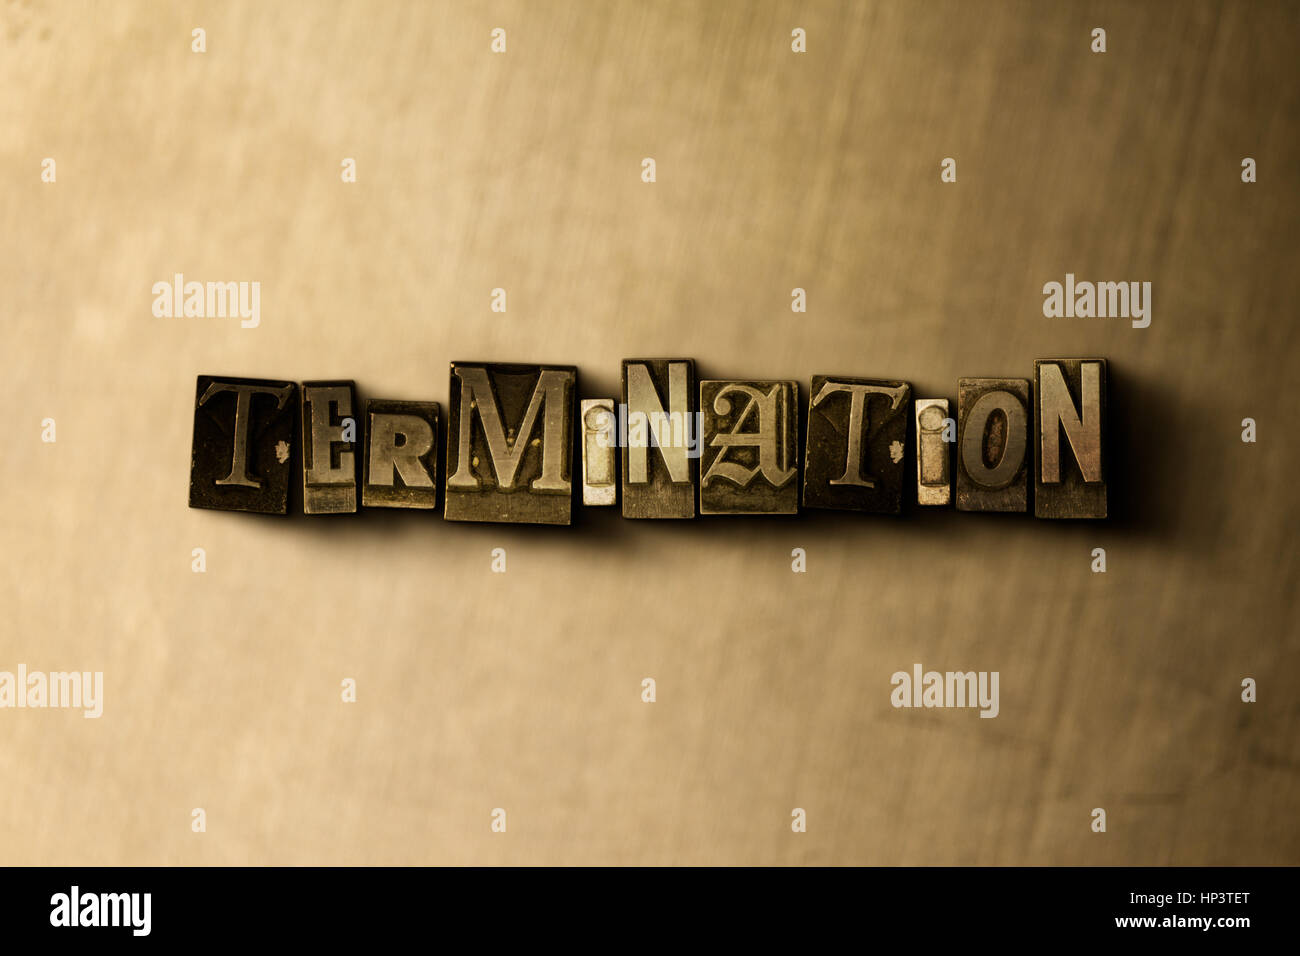 TERMINATION - close-up of grungy vintage typeset word on metal backdrop. Royalty free stock illustration.  Can be - Stock Image